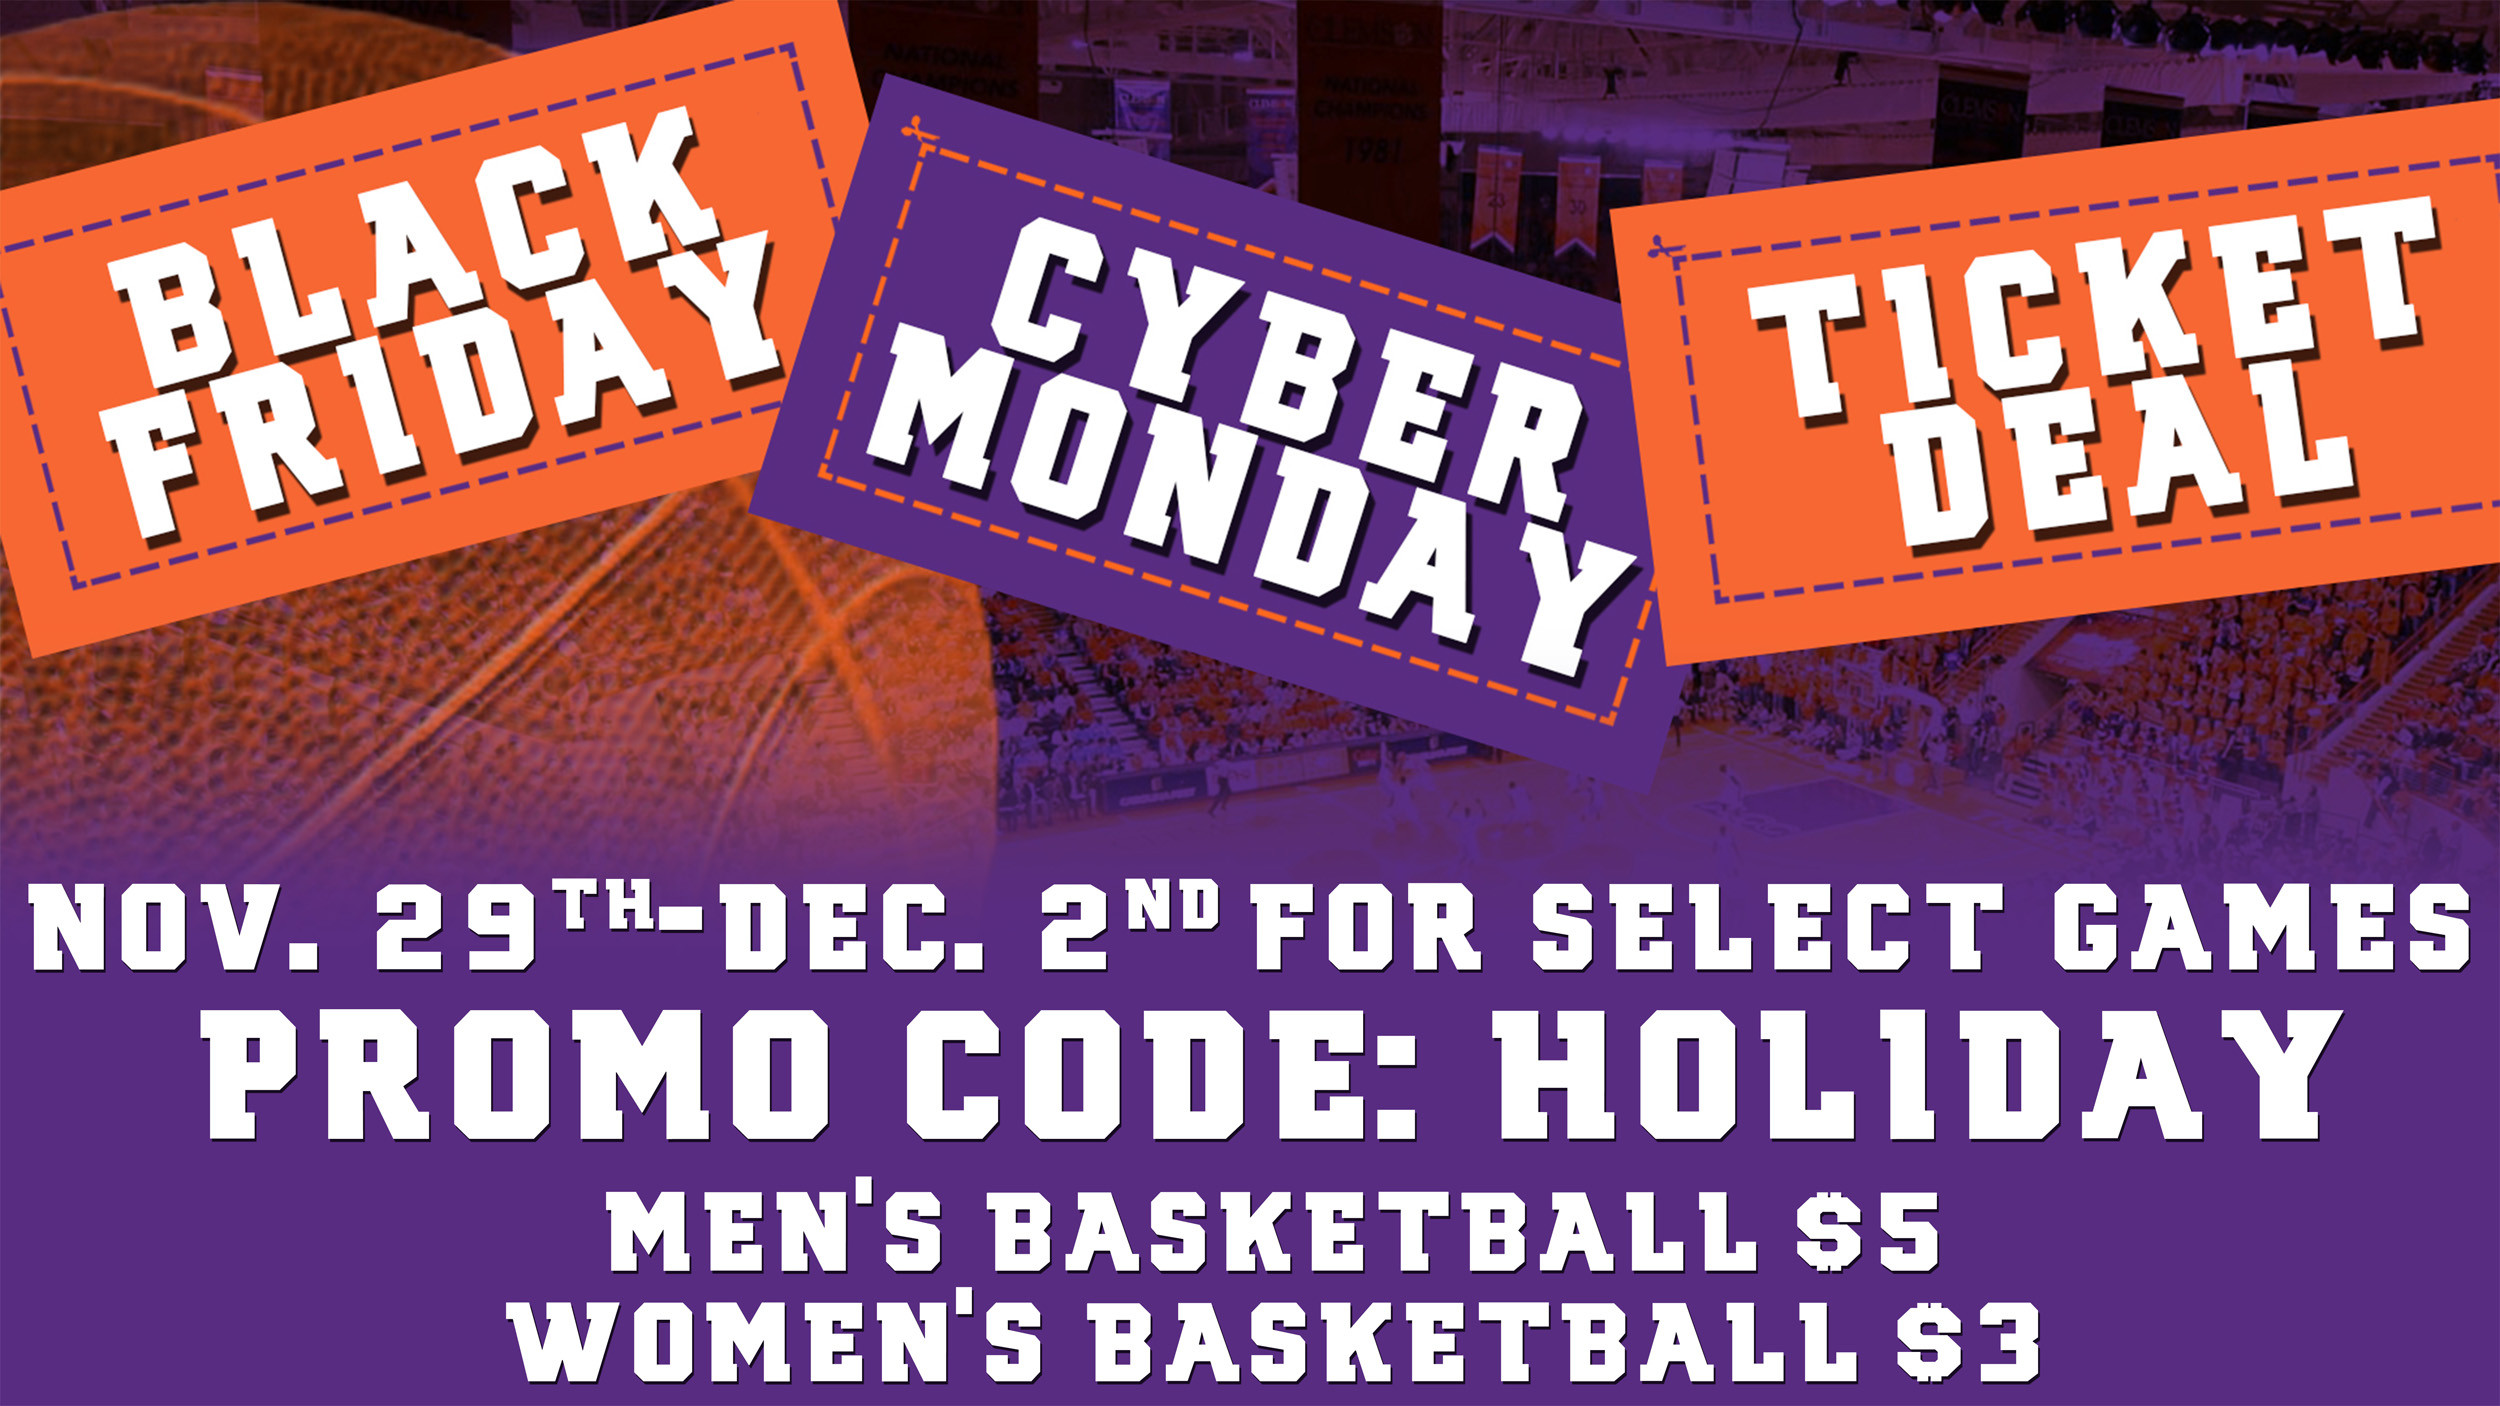 Black Friday/Cyber Monday Ticket Deals Now Available